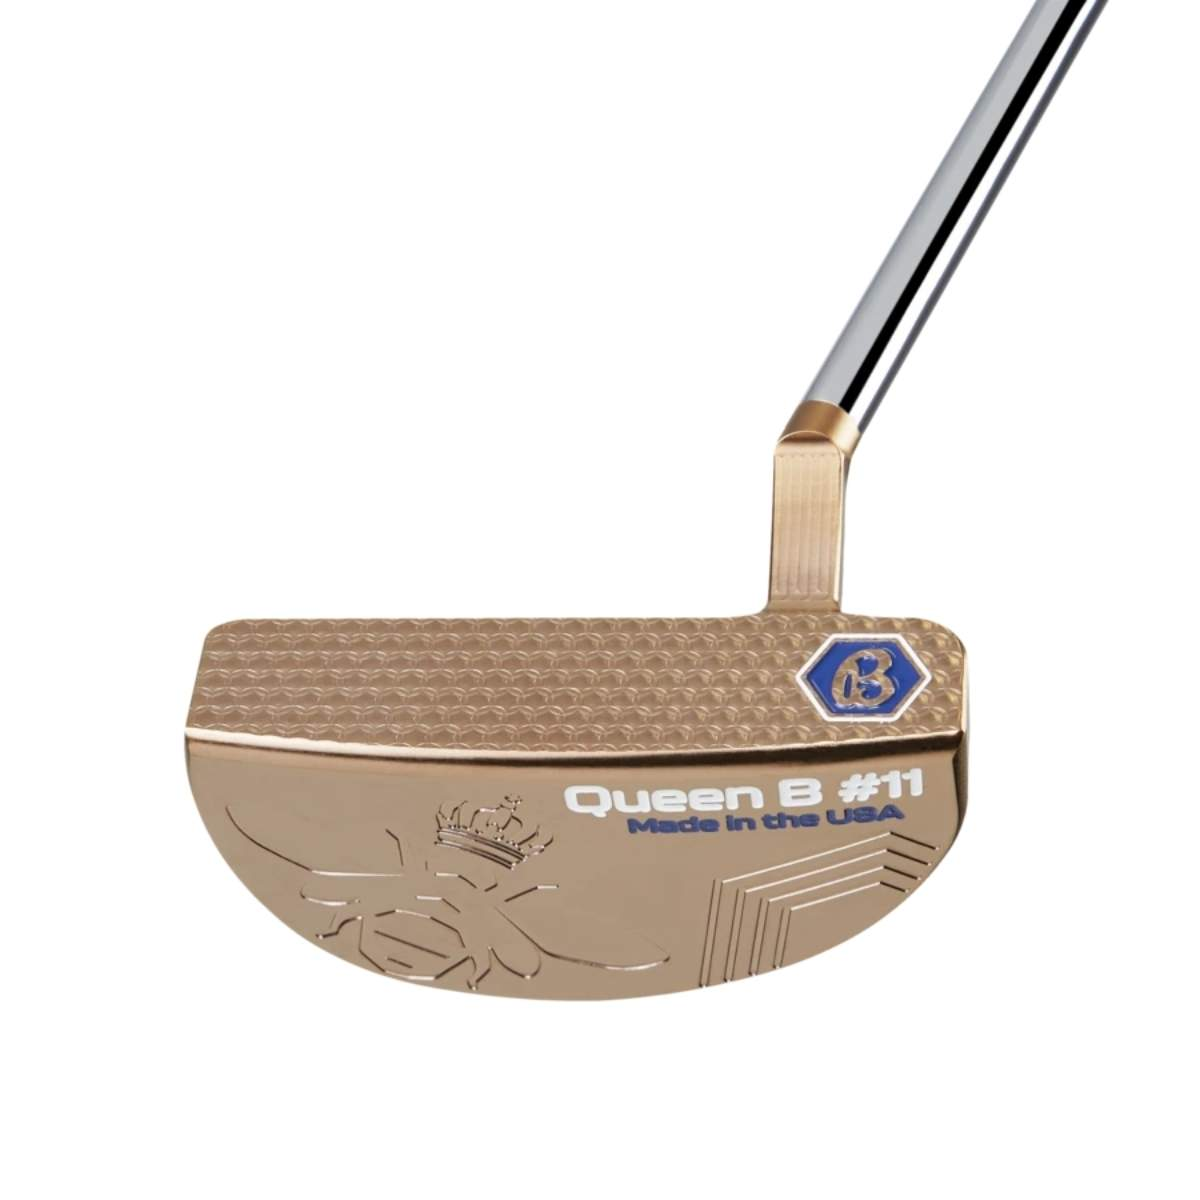 Bettinardi 2021 Queen B 11 Putter